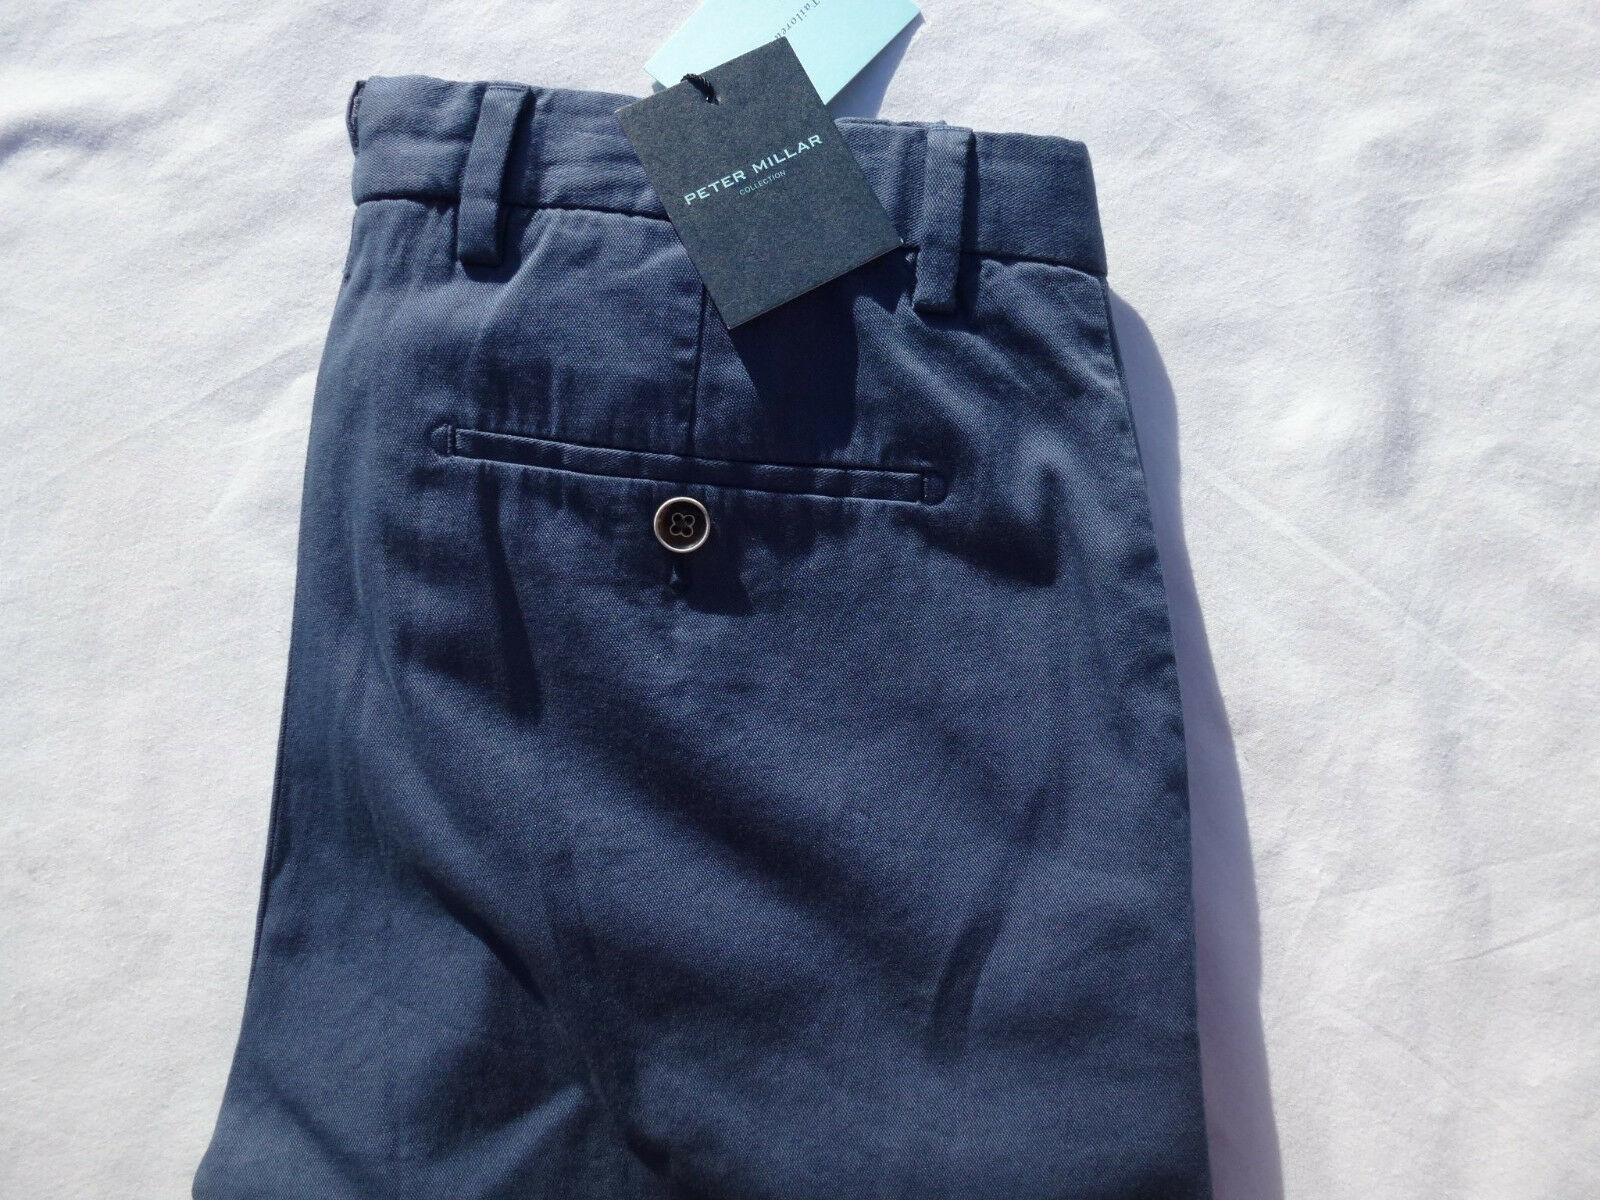 Peter Millar Men's Stretch Cotton Pants bluee Size 30 = 30x34 Tailored Fit